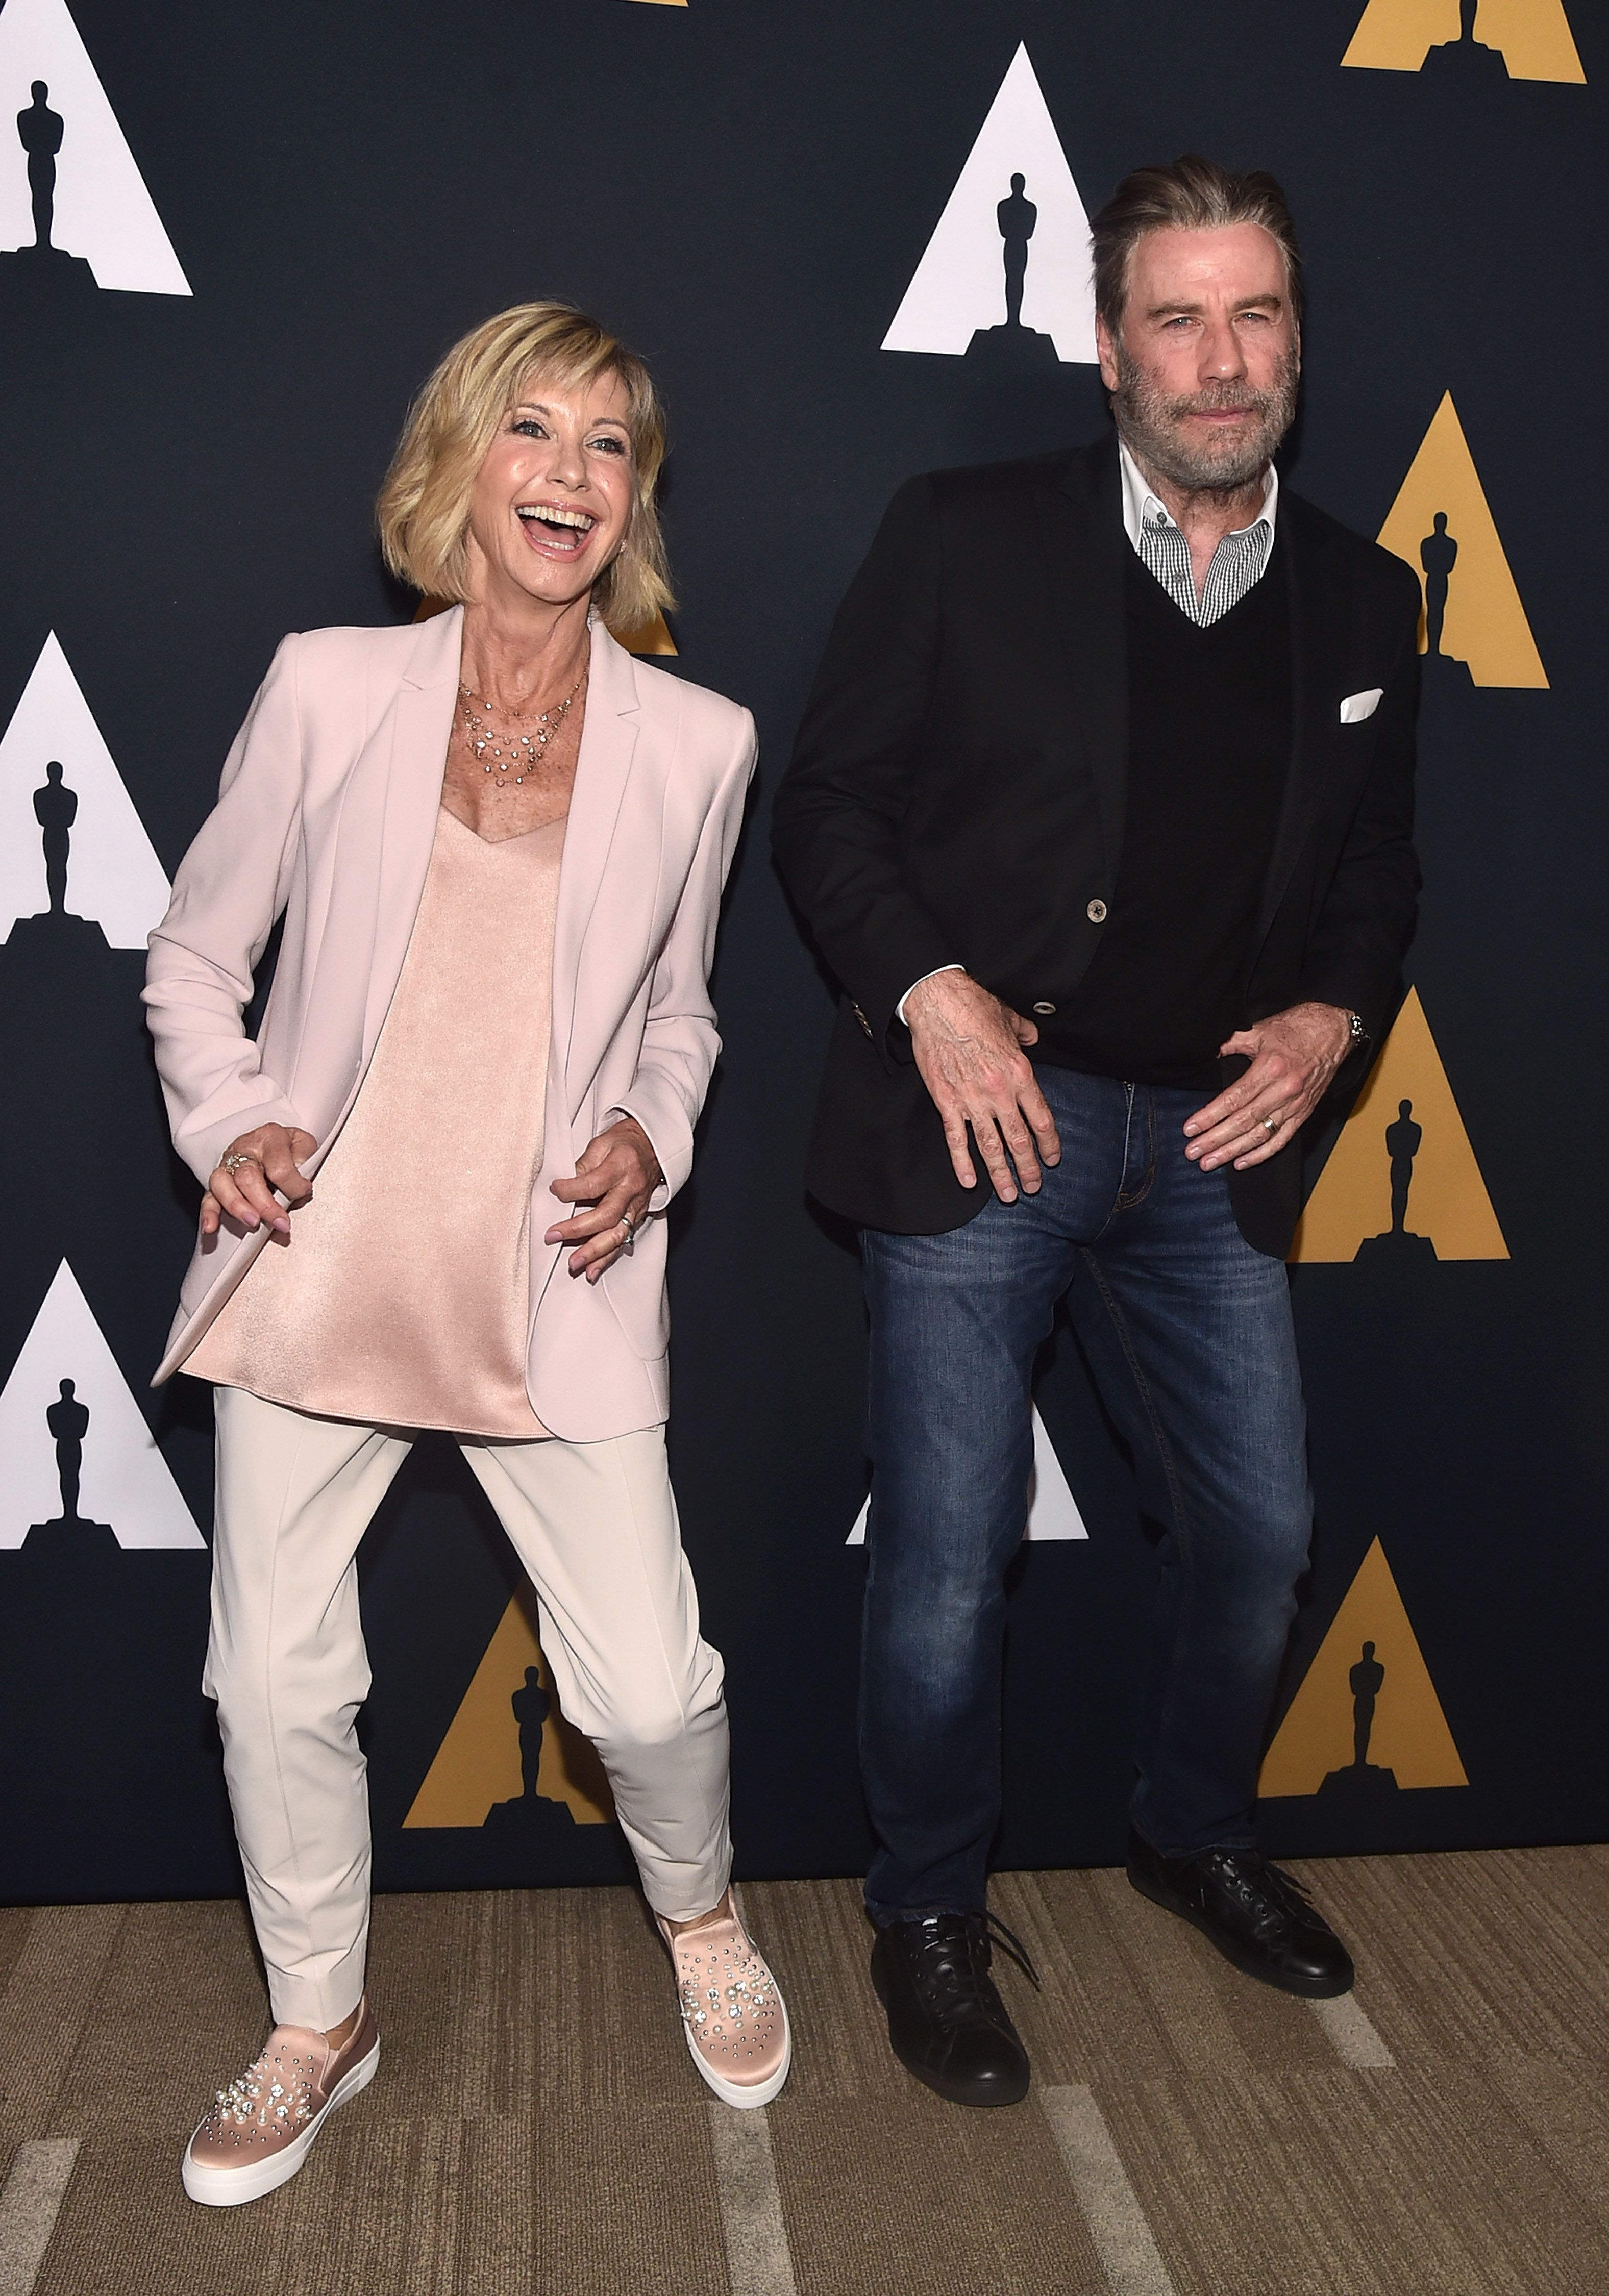 'Grease' 40th Anniversary Reunites Olivia Newton-John And John